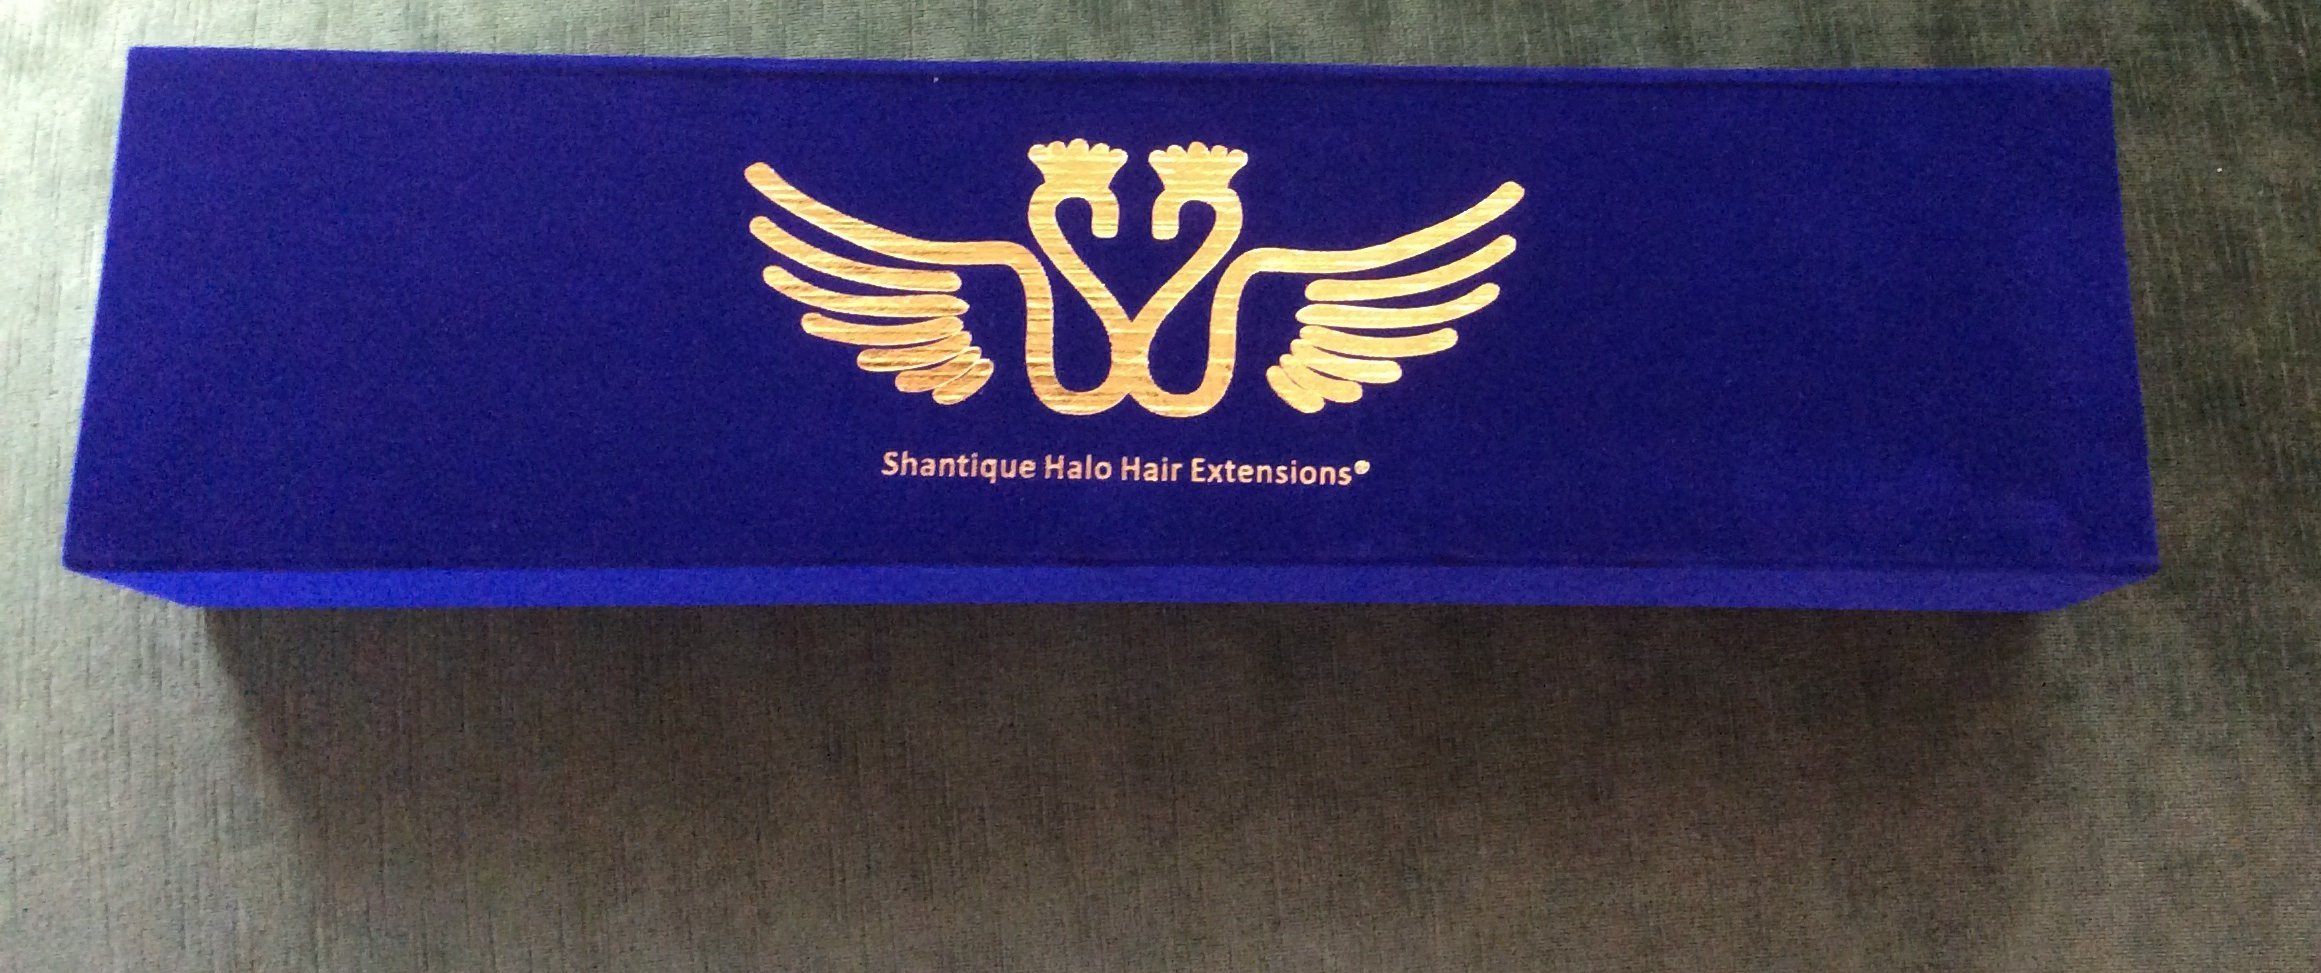 Shantique Halo Hair Extensions Color #12 Size 12''. Top Quality Virgin Remy 100% Unprocessed Brazilian Human Hair by Shantique Halo Hair Extensions (Image #6)